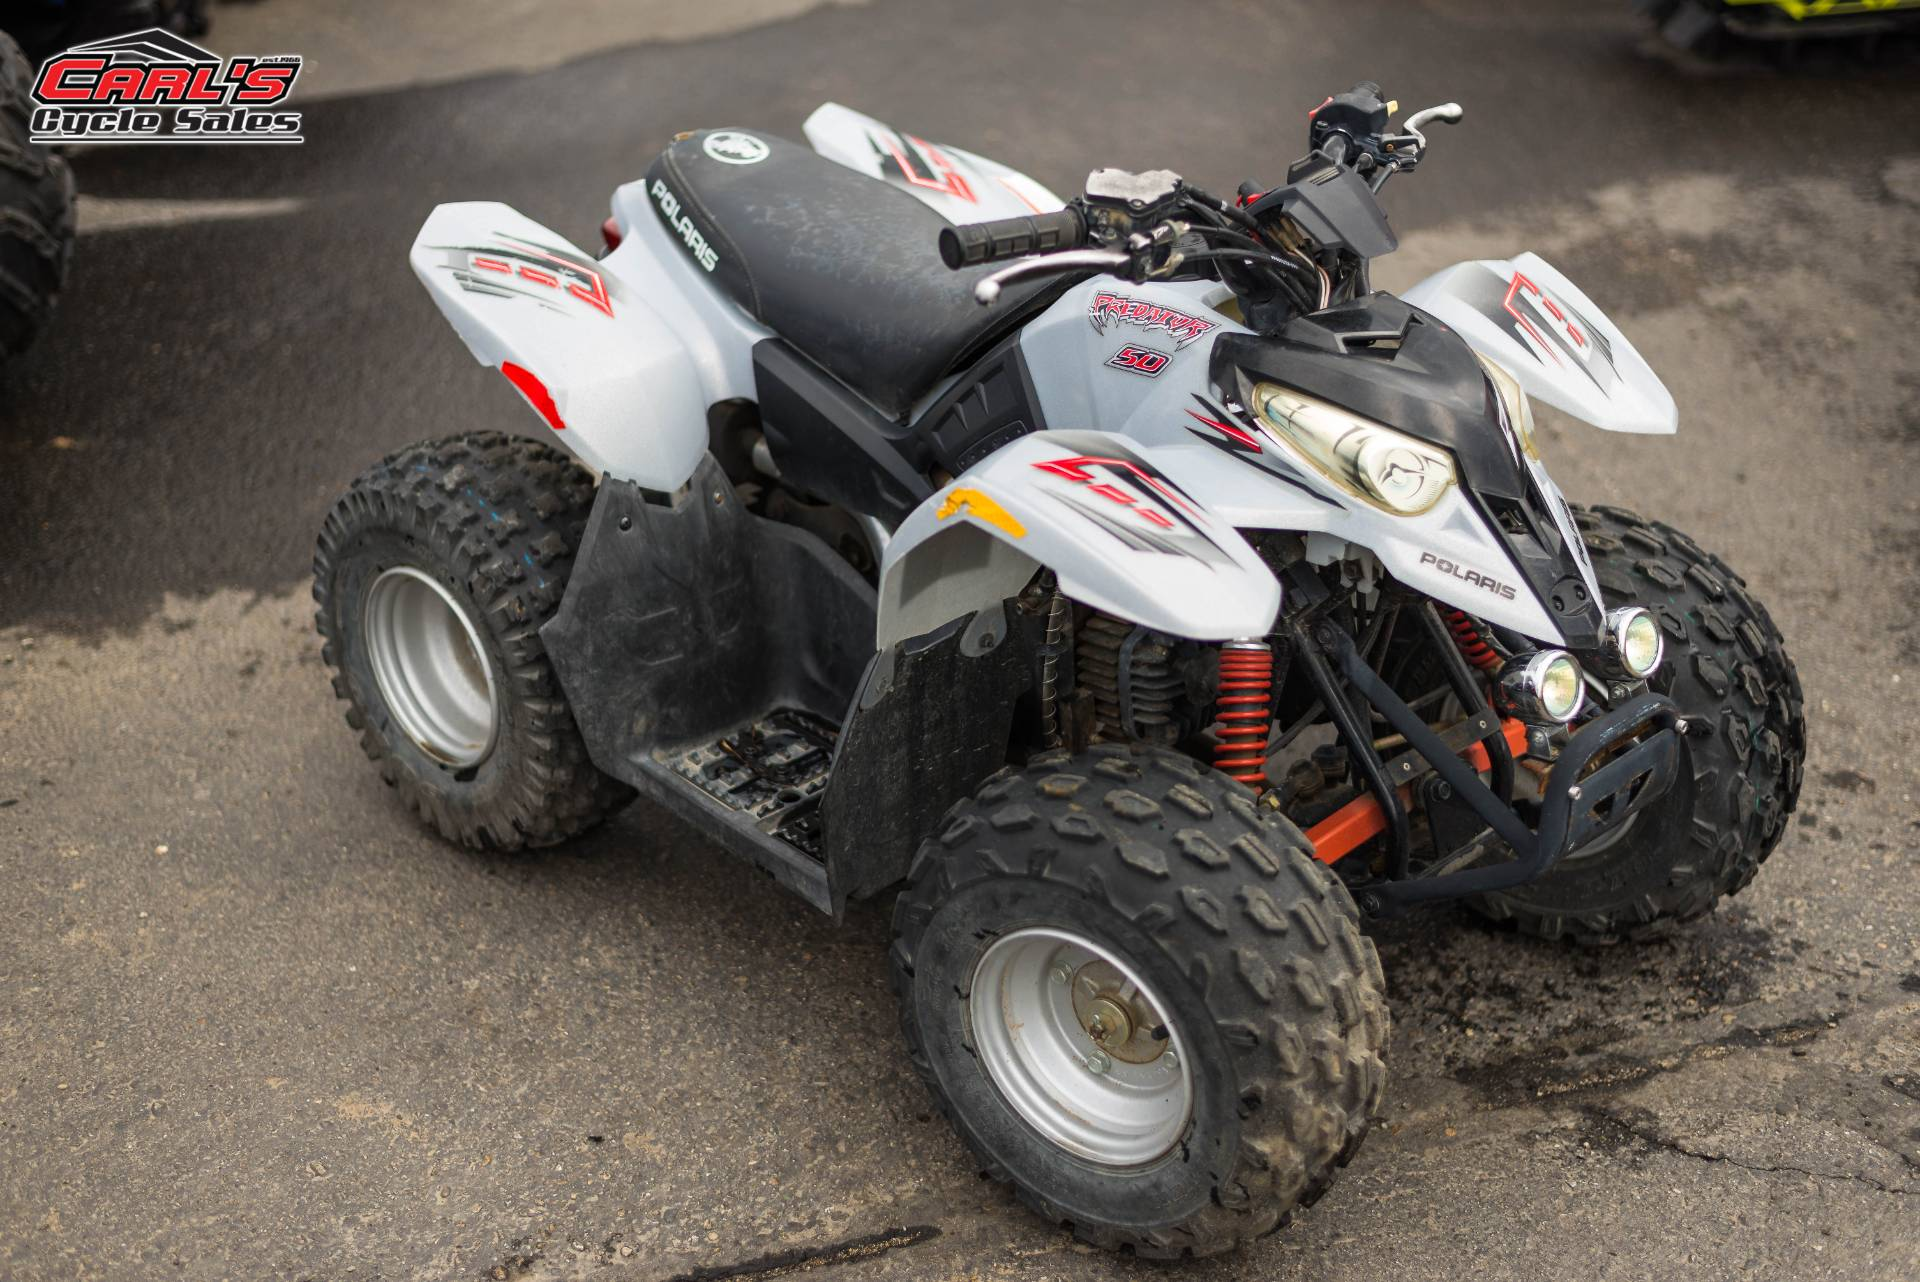 2004 Polaris Predator 50 in Boise, Idaho